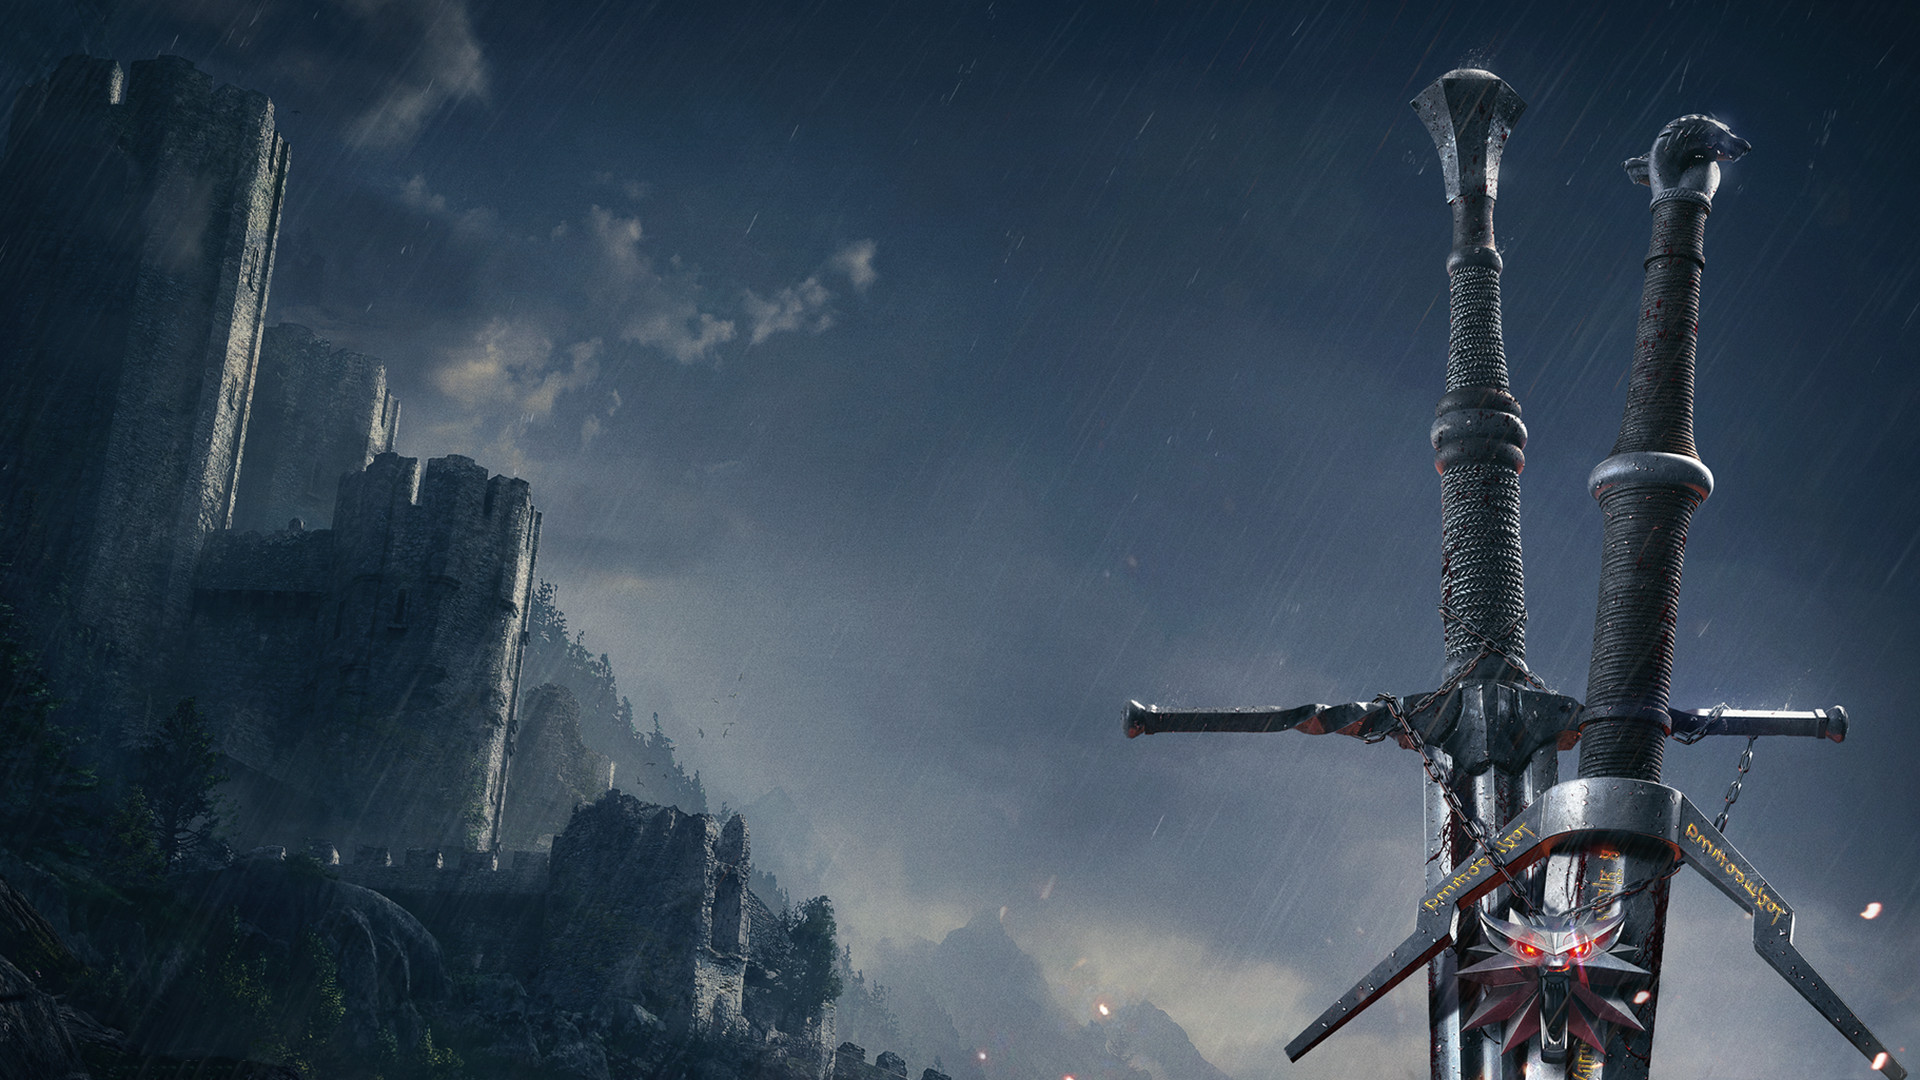 A Witcher primer: What you need to know to play The Witcher 3